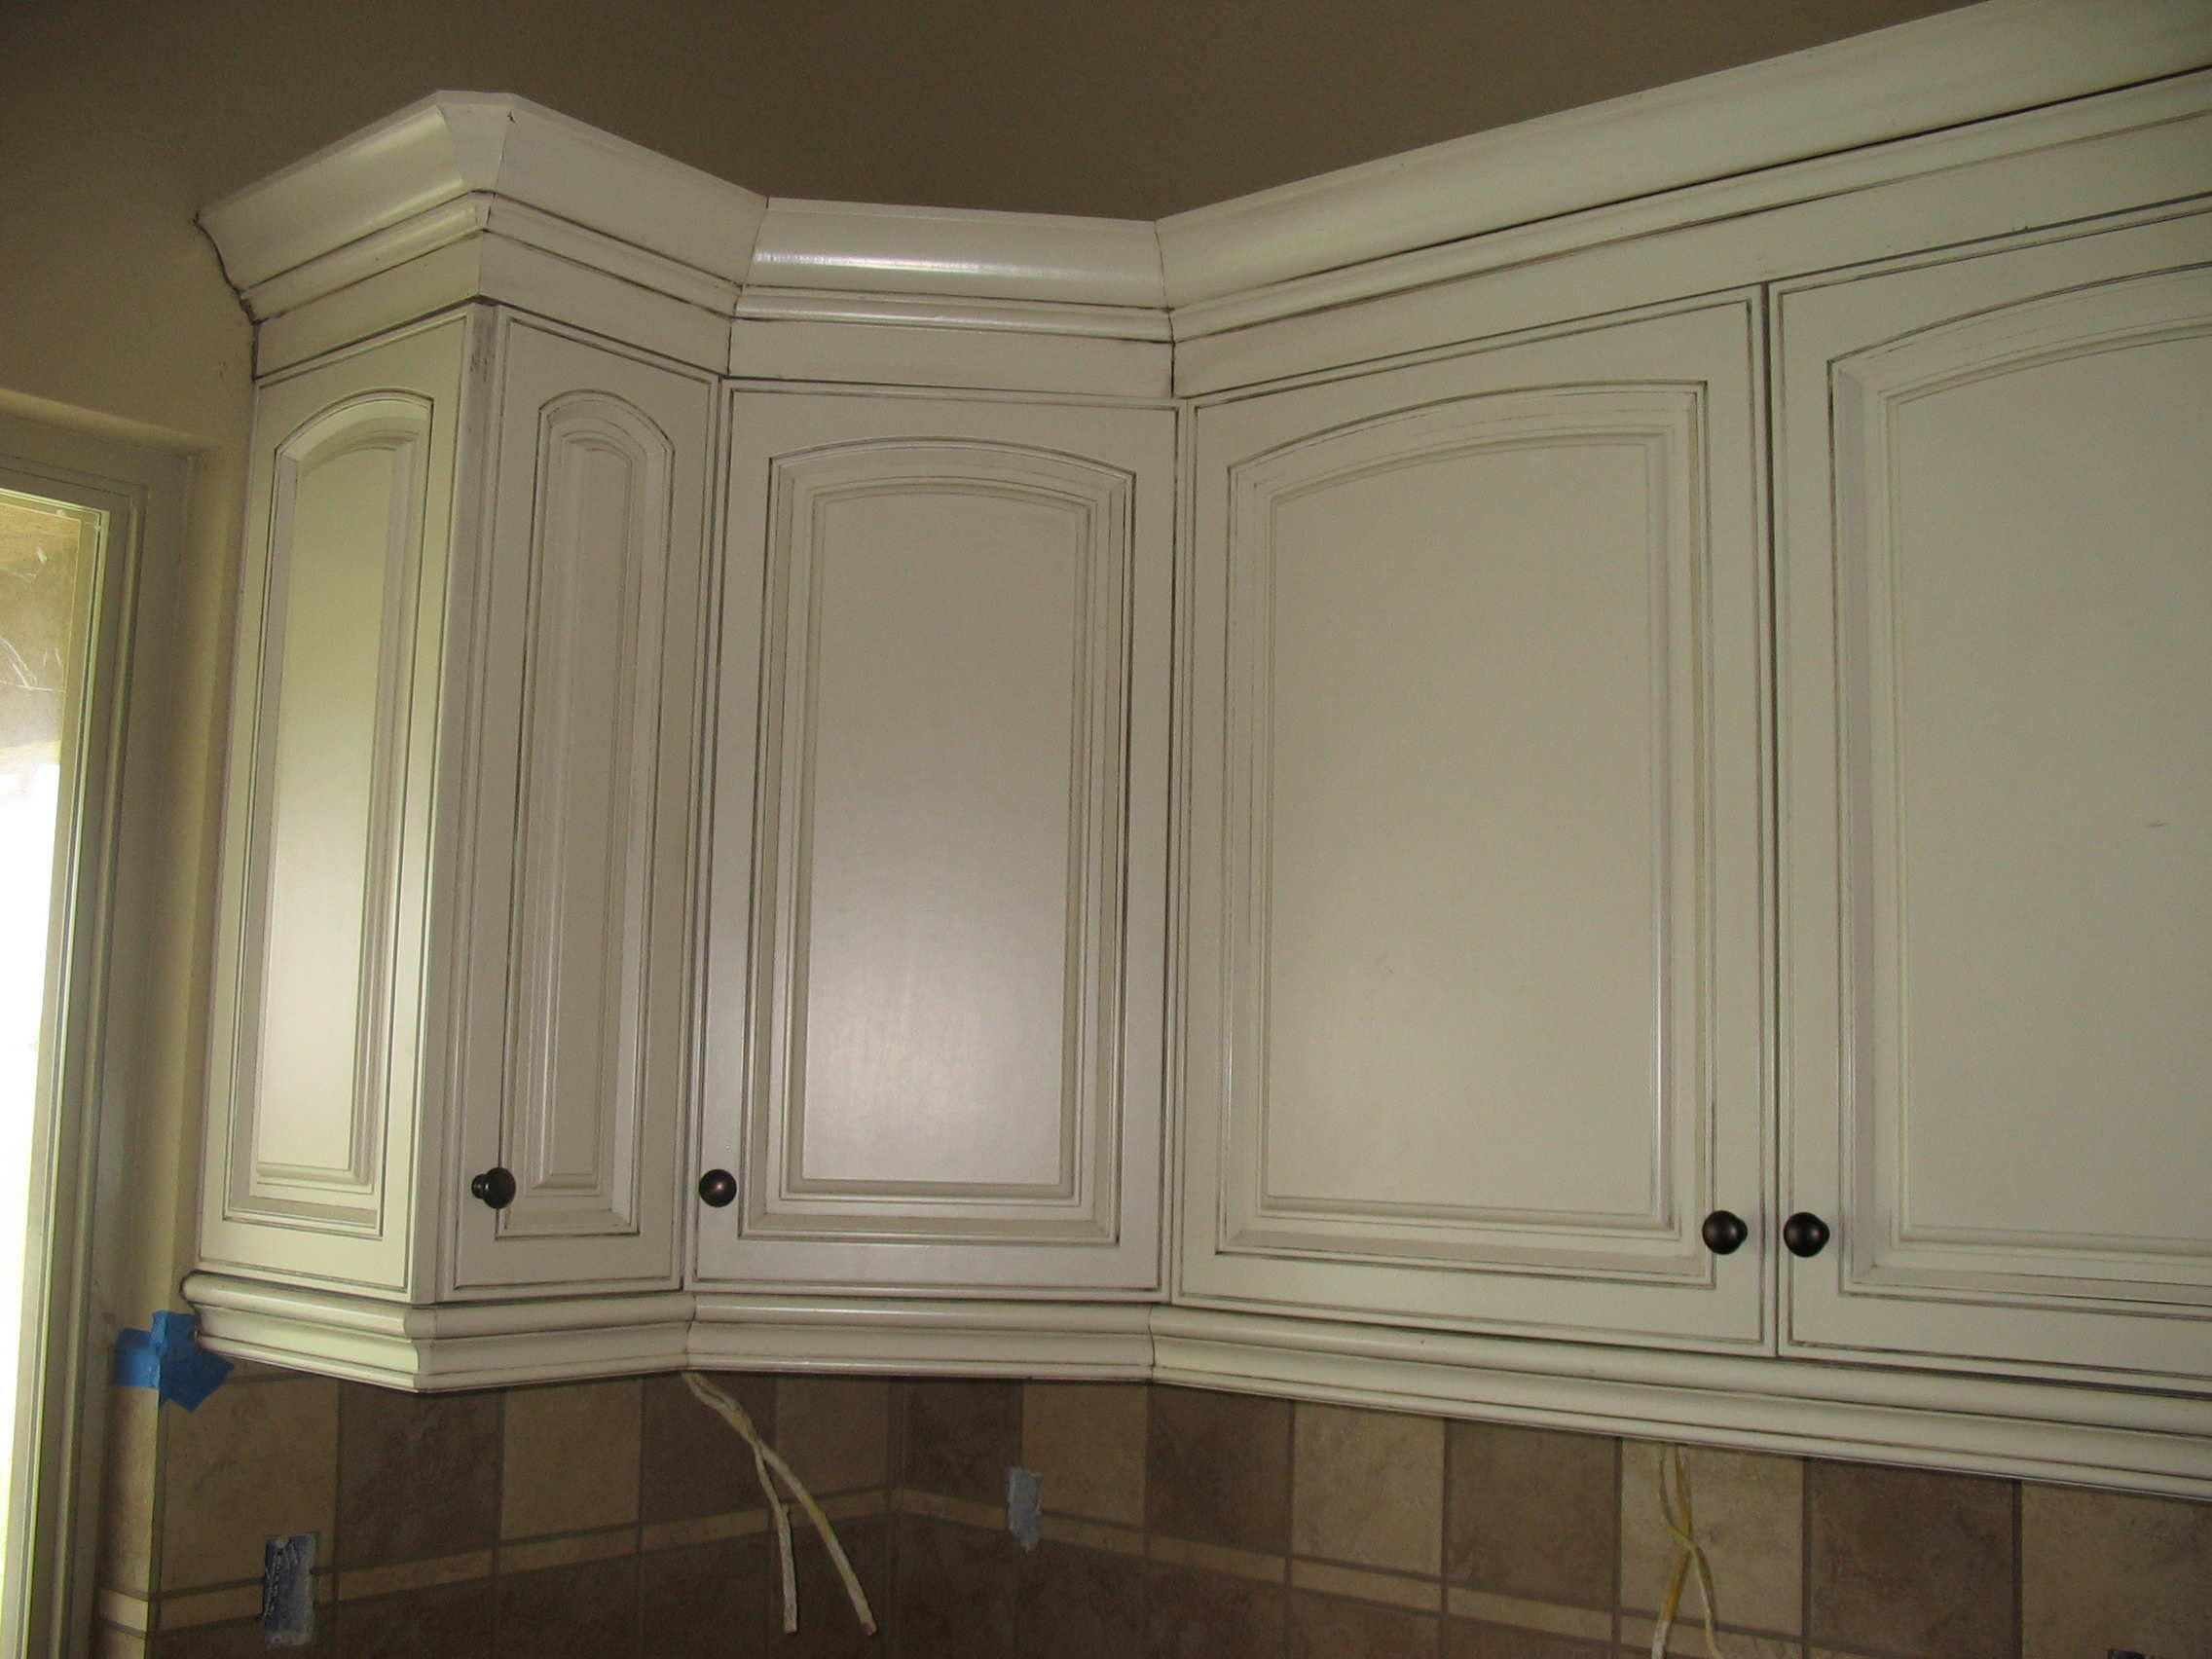 Images Of Cabinets Stained White Justdotchristina Blog Archive Apartment 101 To Interior Design